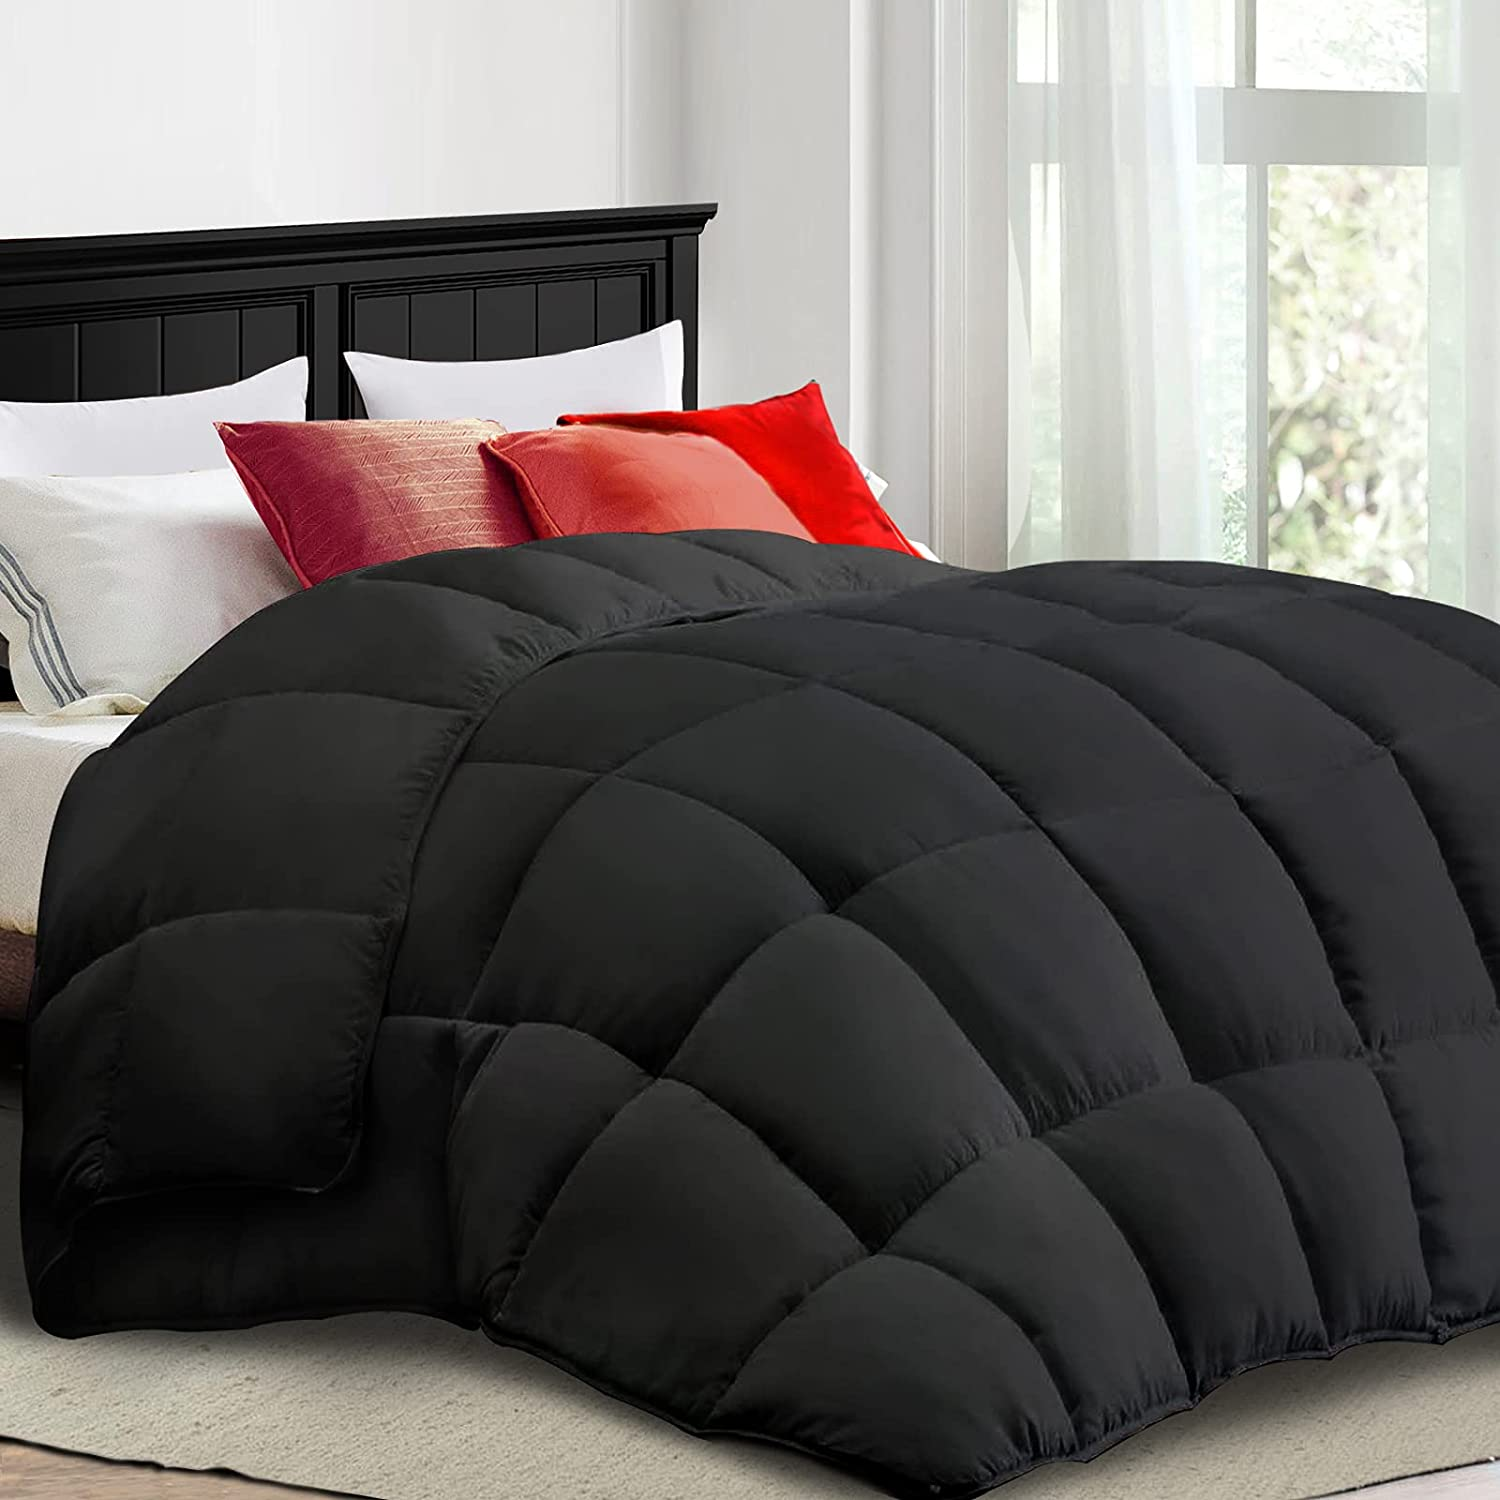 COONP All Season Twin Comforter Brand new Down Max 80% OFF Alternative Quilted Cooling